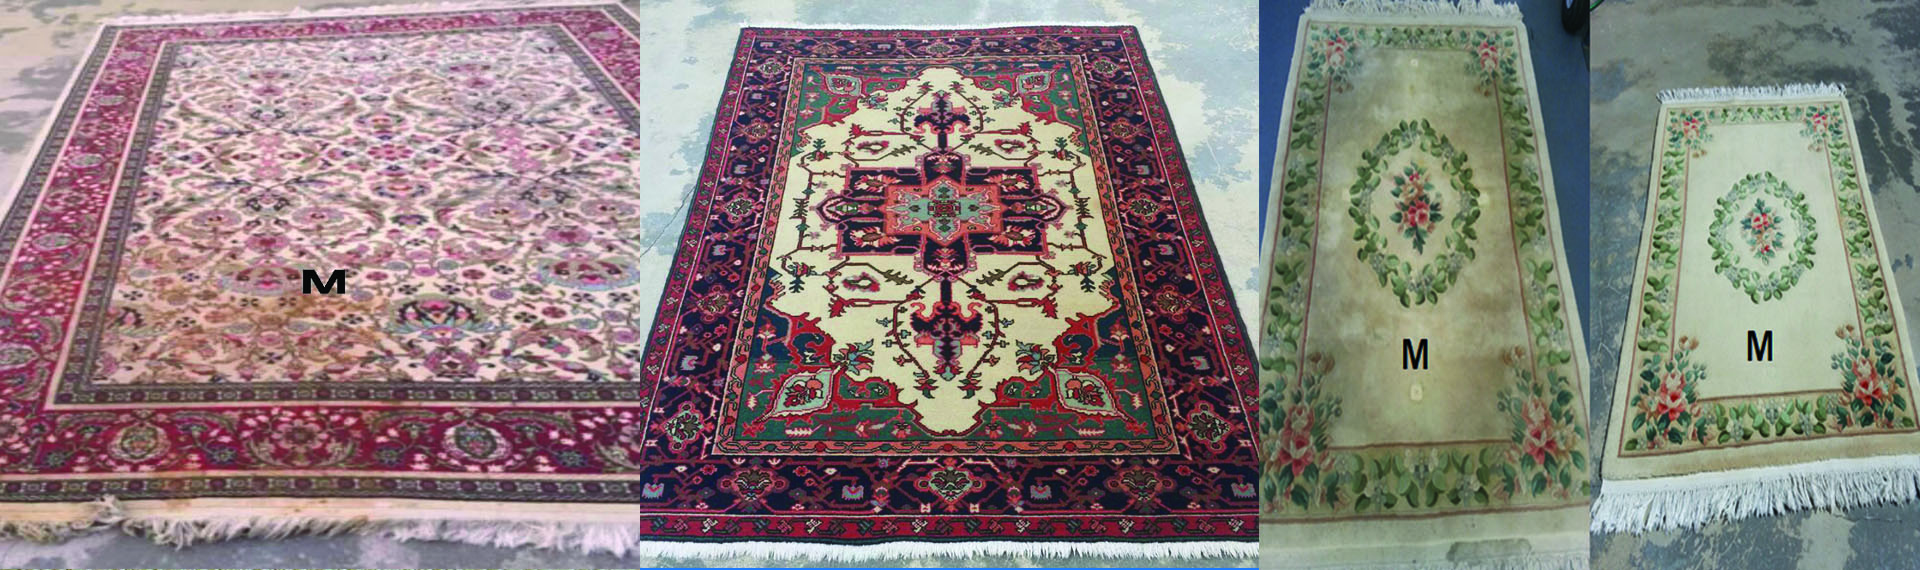 Oriental Rug Hand Cleaning Master & Repair Waterford Lakes FL